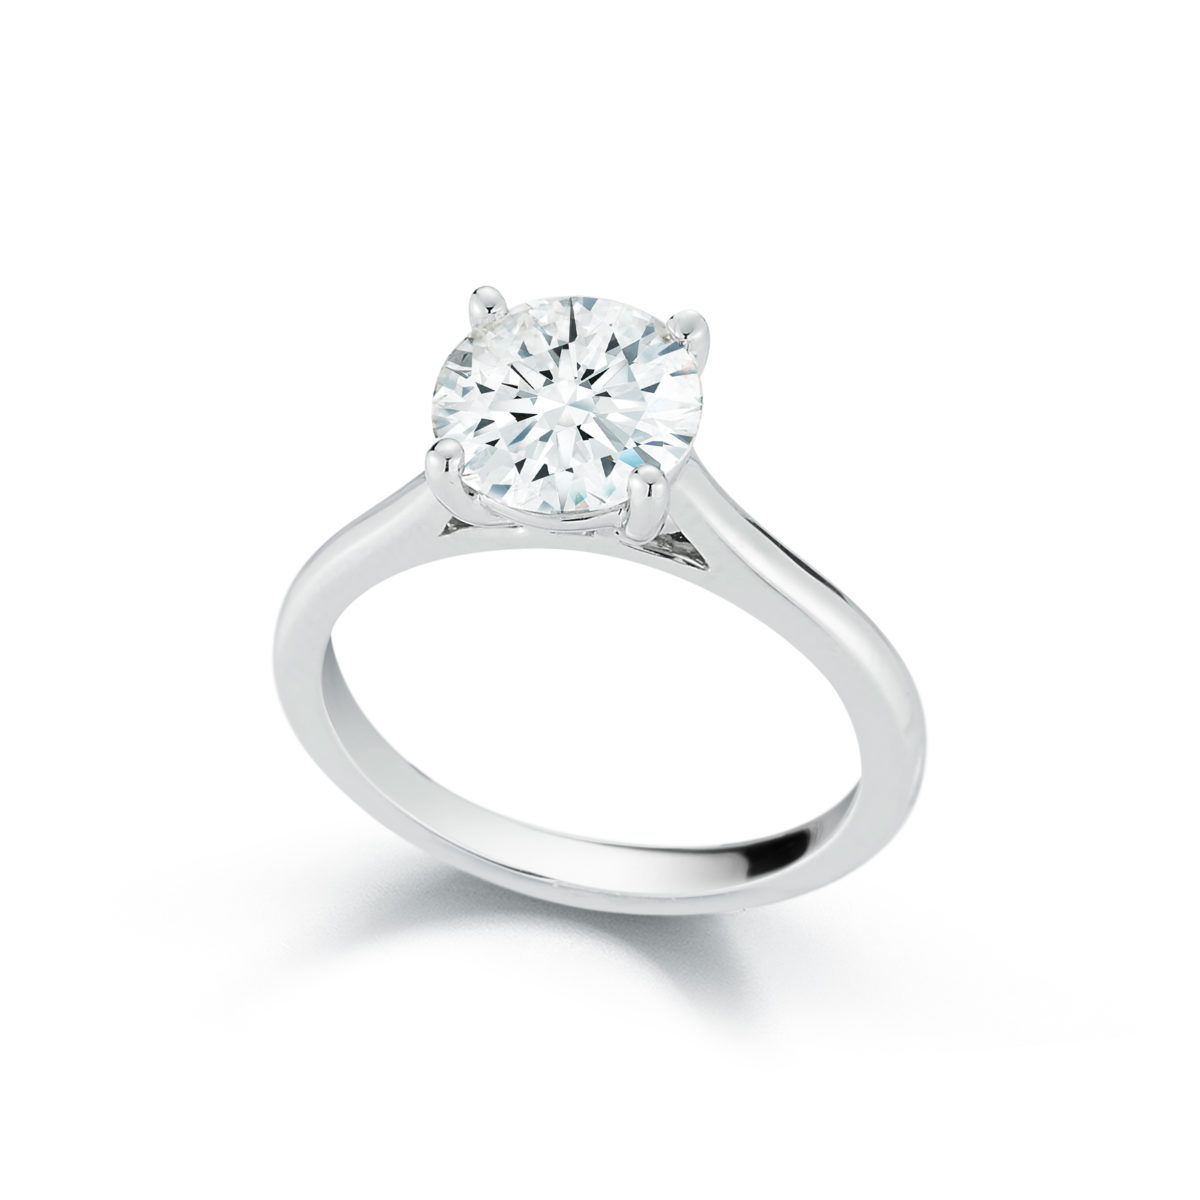 Marshall Pierce Company Chicago Cathedral Diamond Solitaire Engagement Ring 1